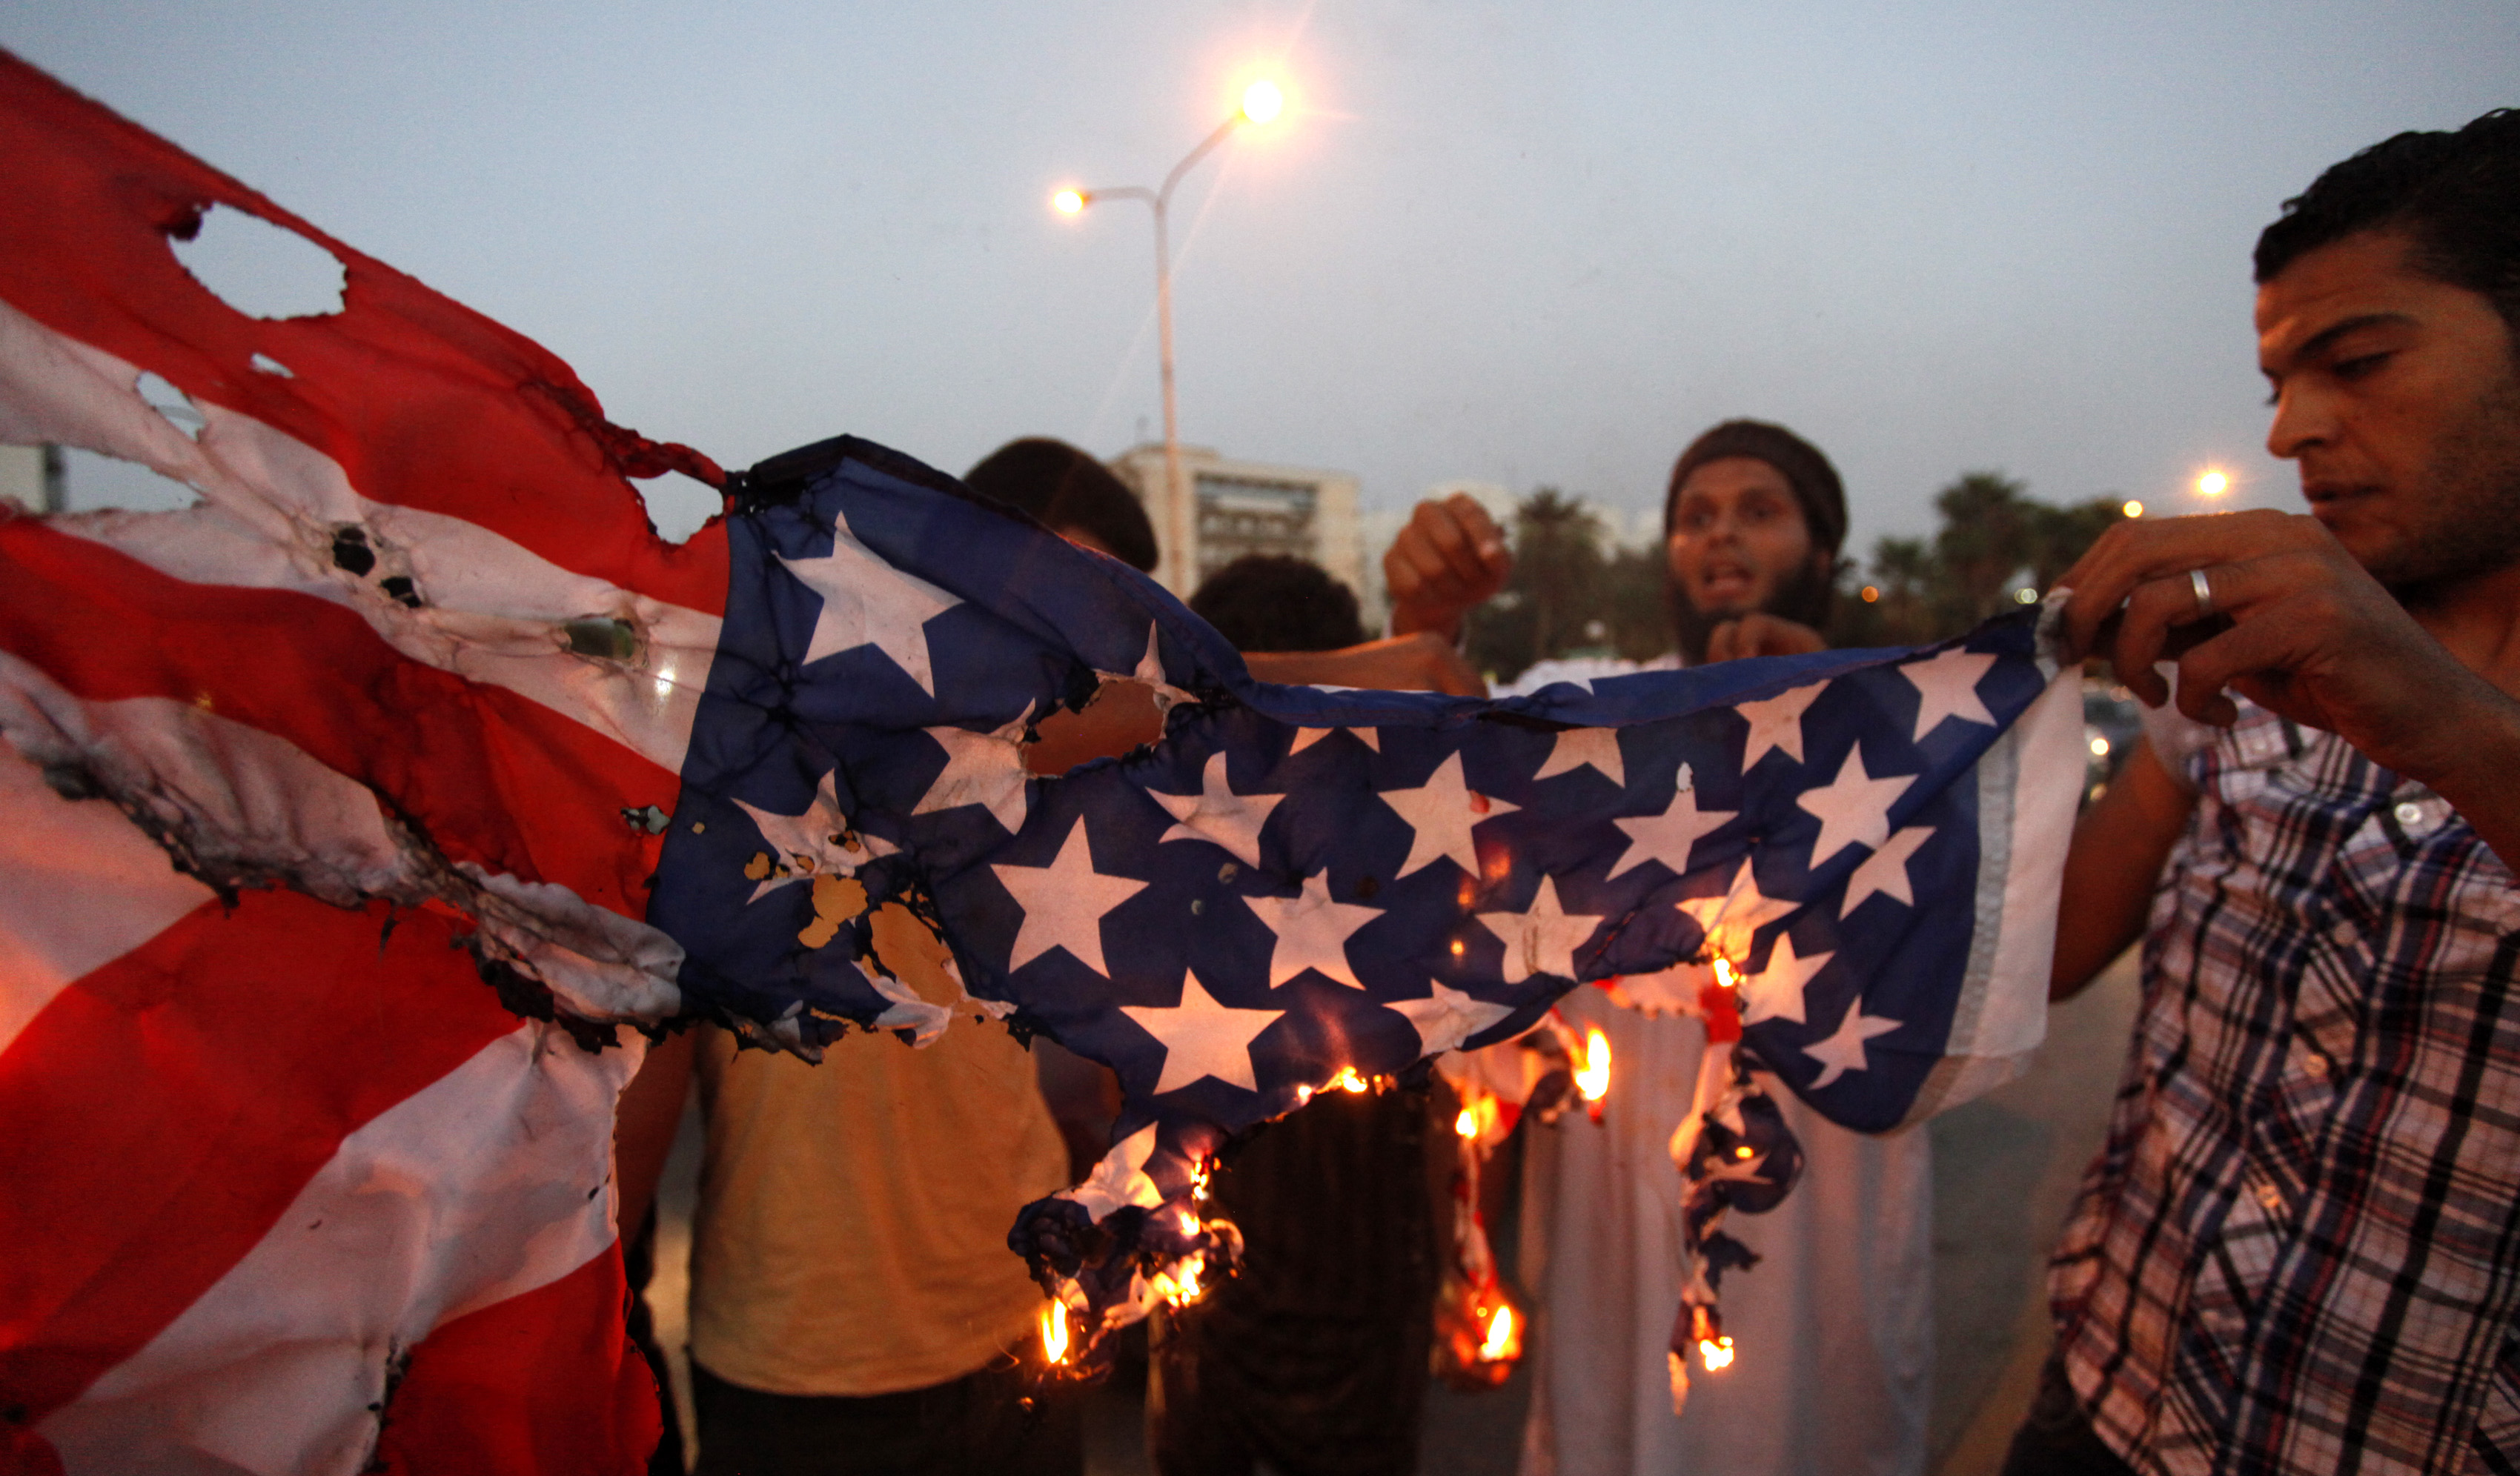 Libyan followers of Ansar al-Shariah Brigades burn the U.S. flag during a protest in Benghazi, Libya, on Friday. (Mohammad Hannon/AP)